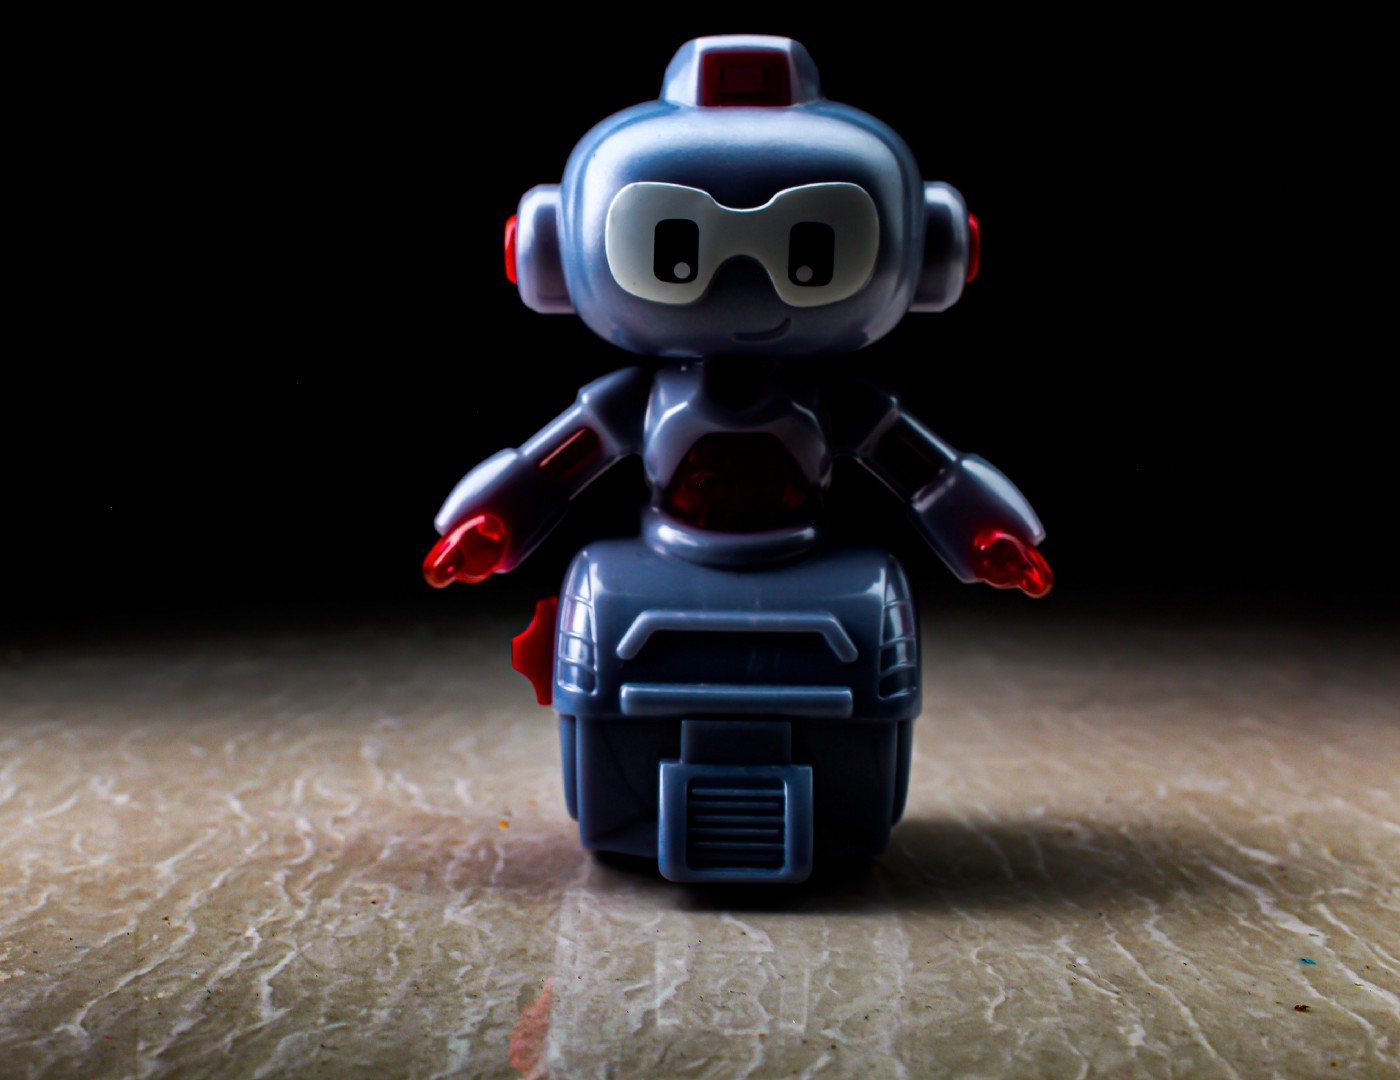 The next generation of robots 🤖- Insights on our investment in BotsAndUs